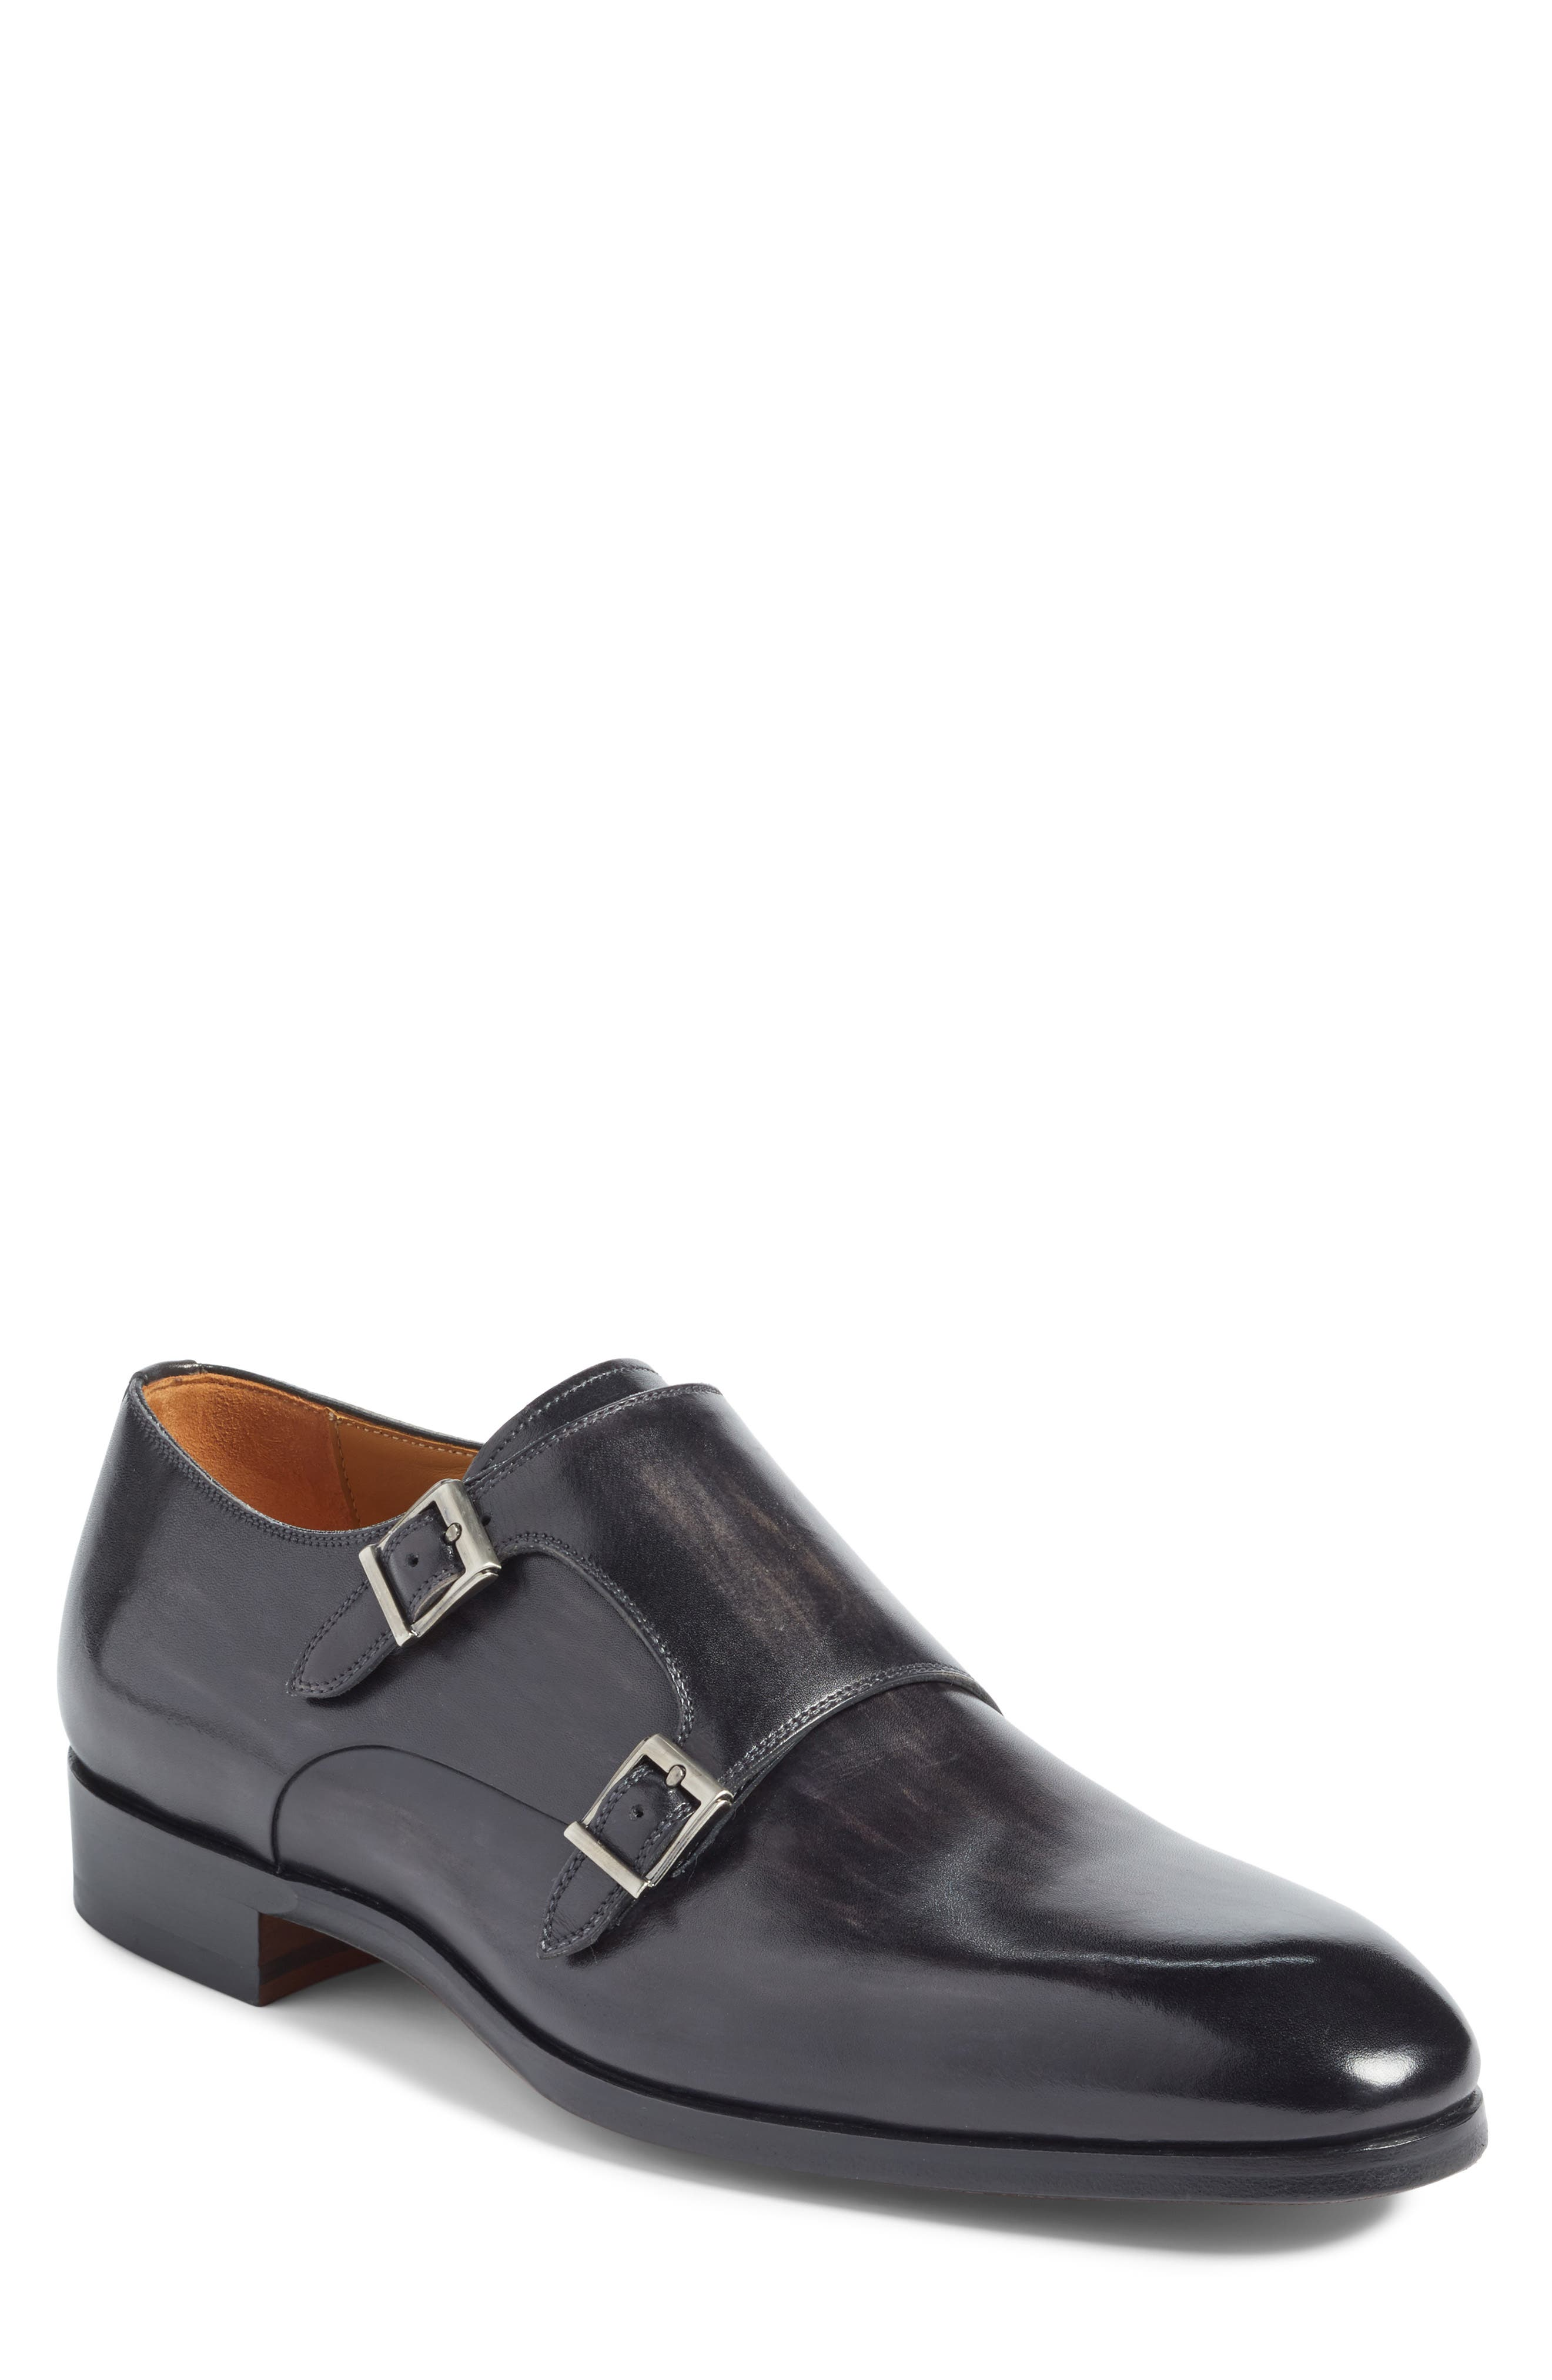 Lucio Double Strap Monk Shoe,                             Main thumbnail 1, color,                             LIGHT GREY LEATHER